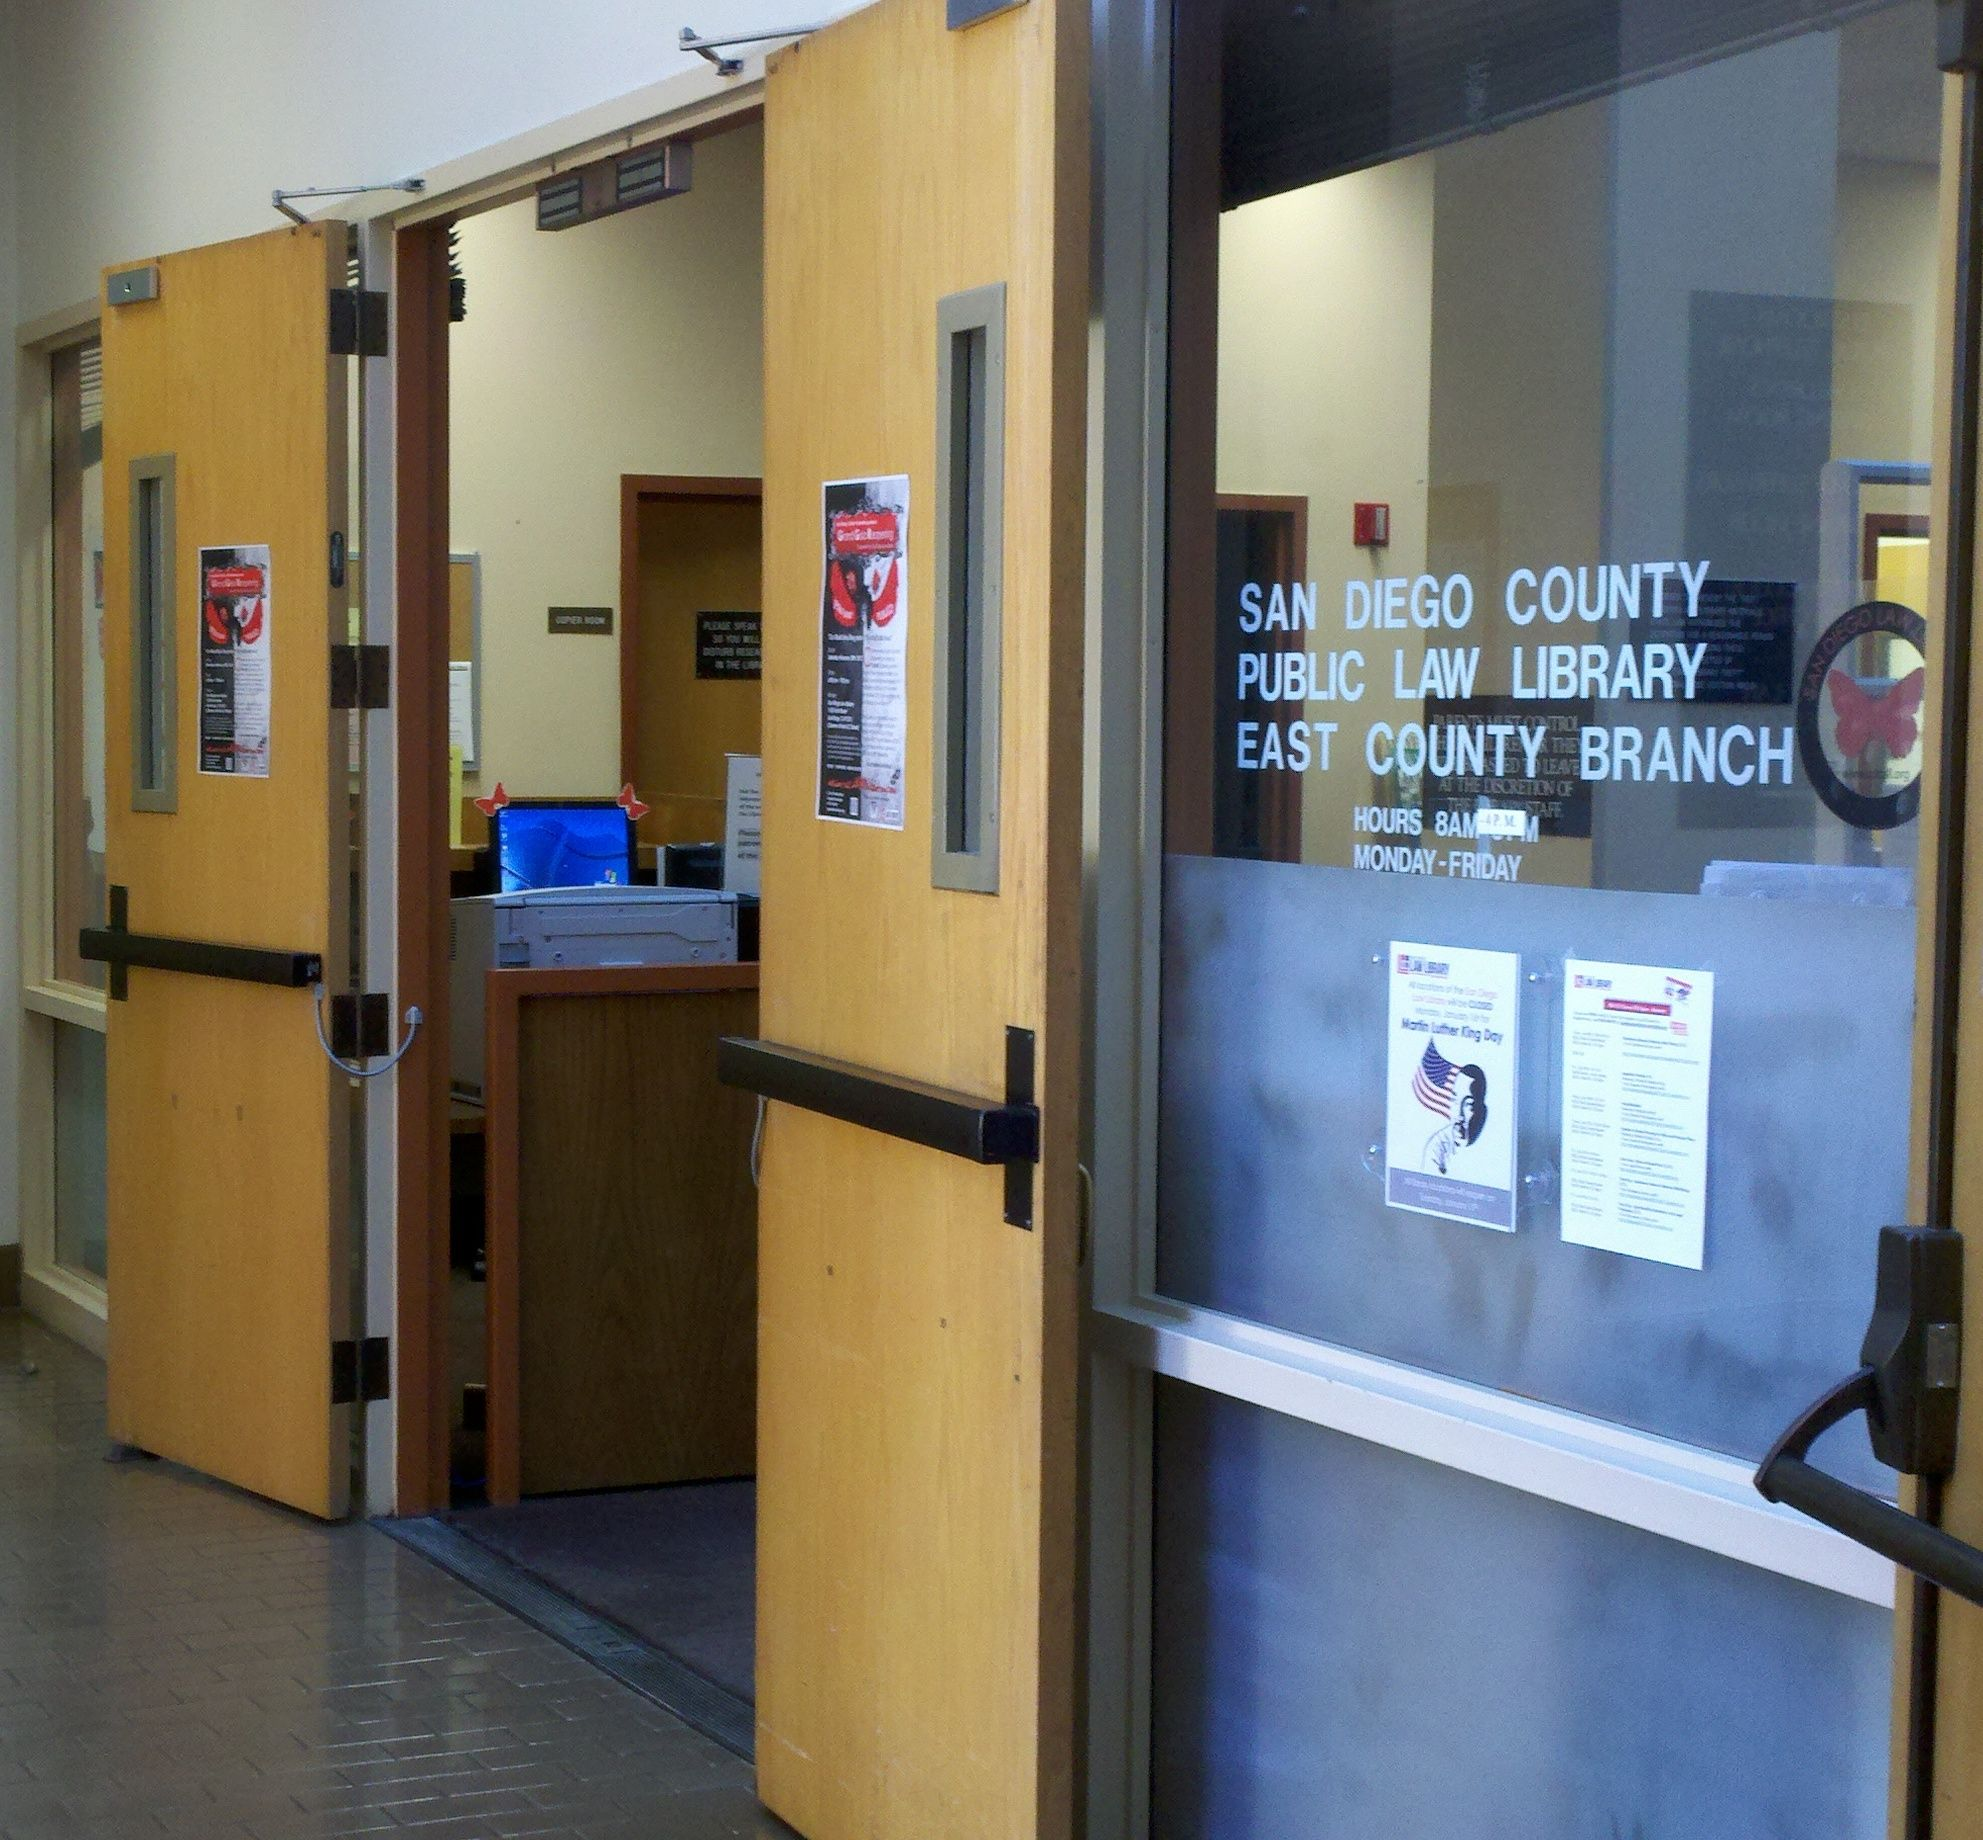 San Diego Law Library East County Branch California